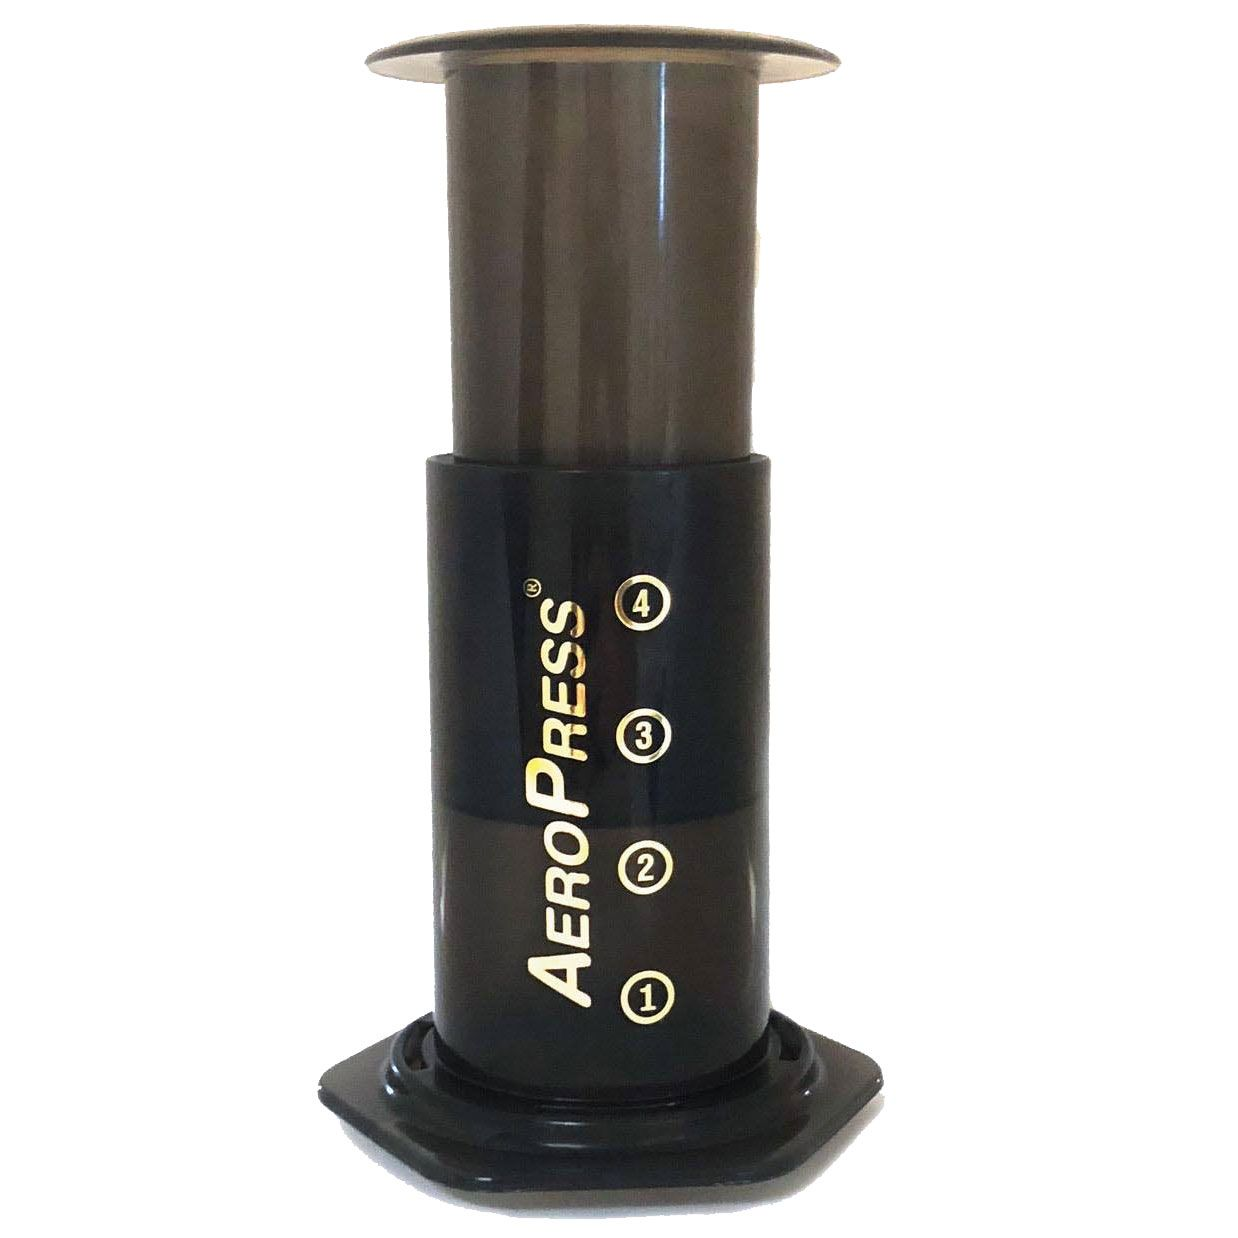 Aerobie AeroPress Coffee & Espresso Maker, Made in the USA